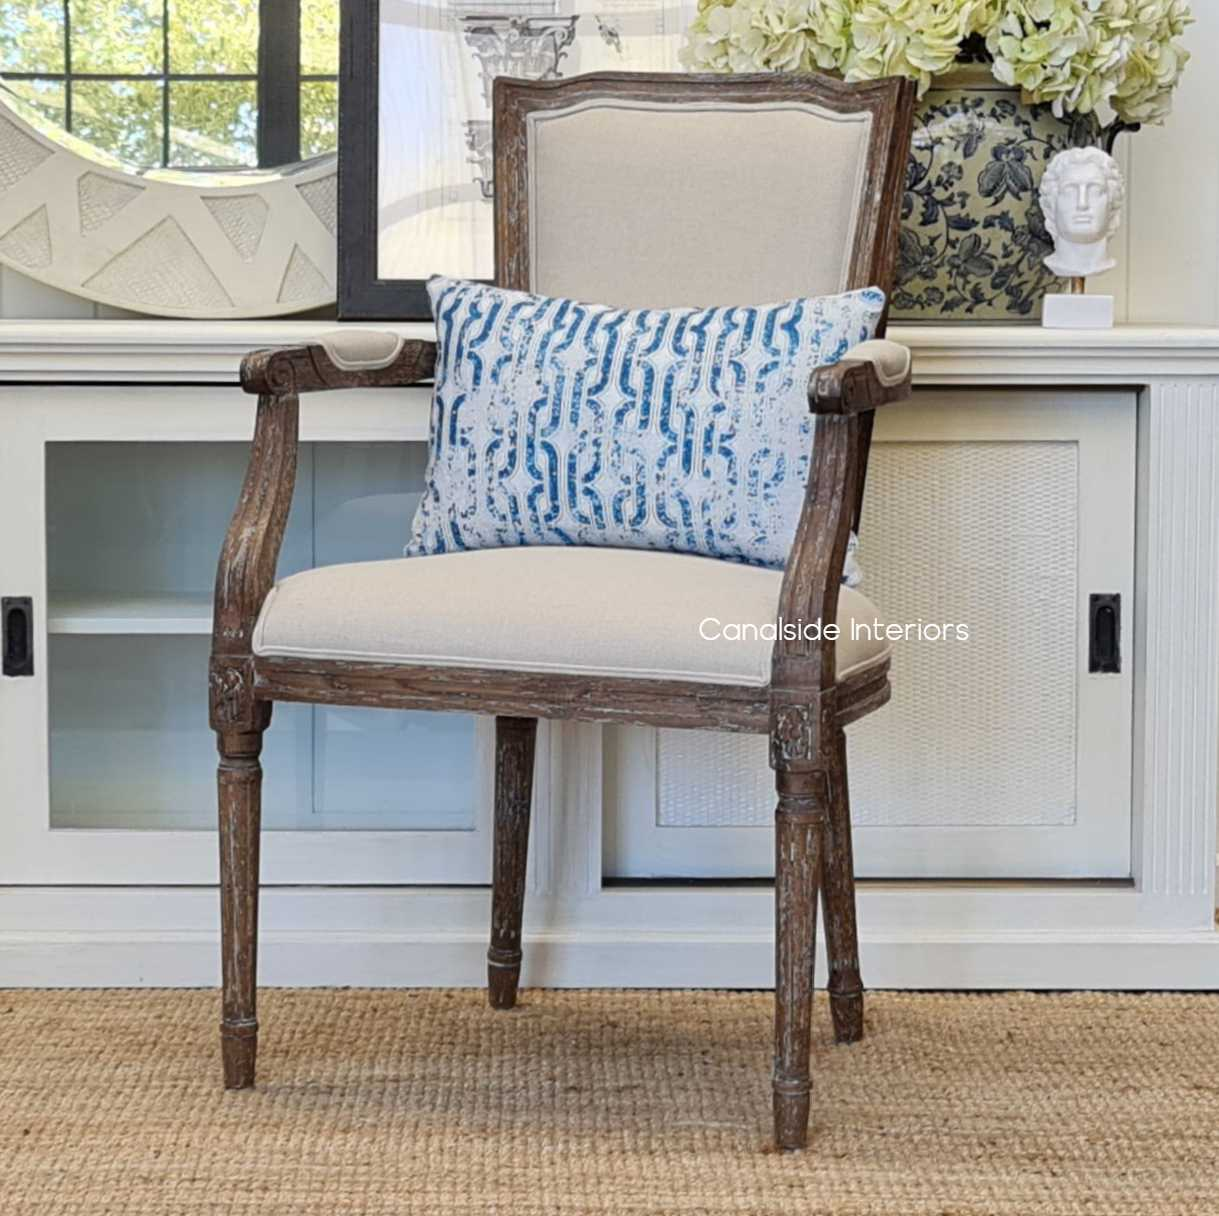 Stark Carver Chair Weathered Oak with cream upholstery  FRENCH  FURNITURE, CHAIRS, HAMPTONS Style, PLANTATION Style, CHAIRS Dining, CHAIRS Lounge, LIVING Room, LIVING Chairs